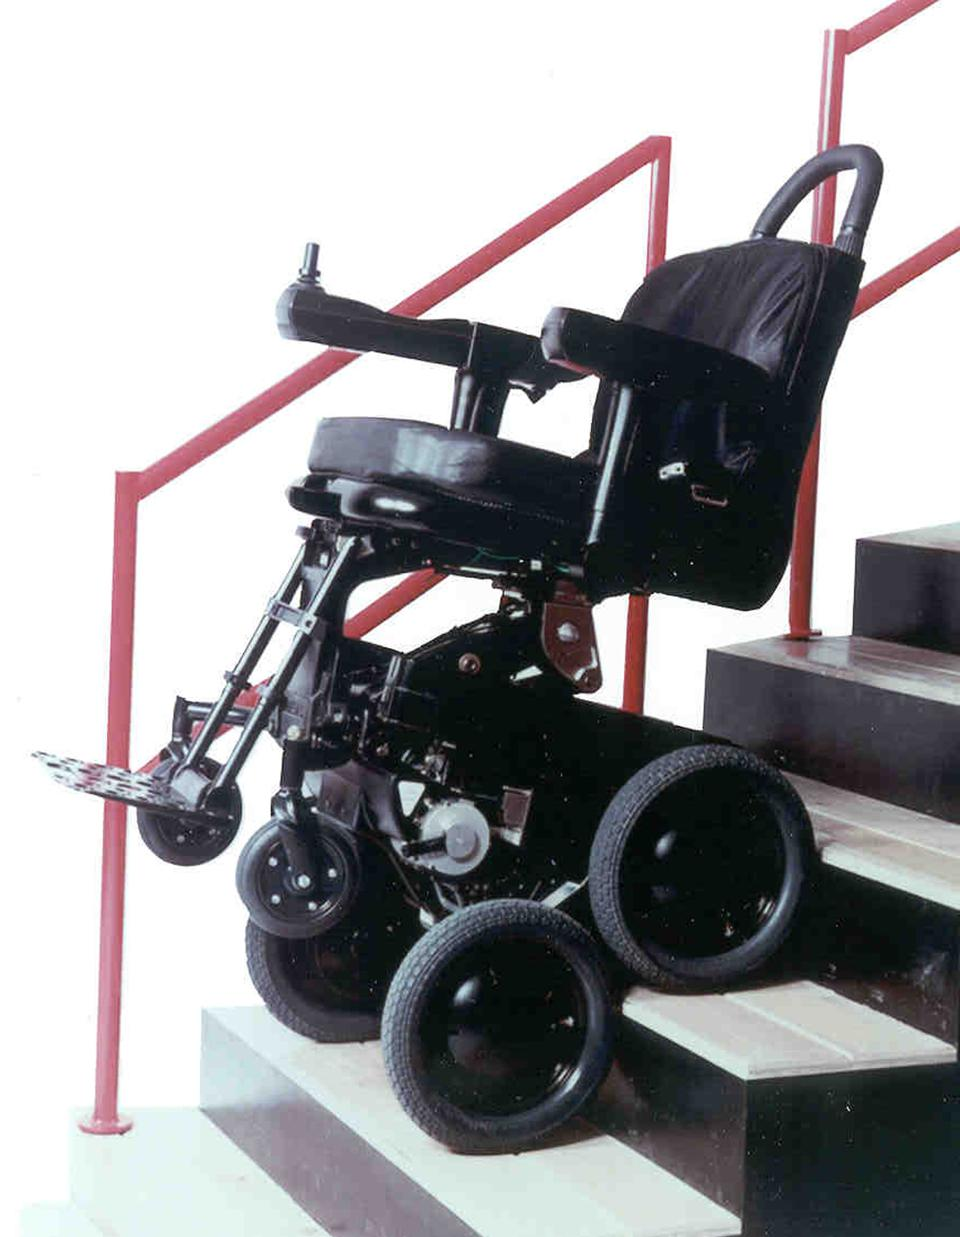 Toyota 39 s idea of mobility includes stair climbing for Motorized wheelchair stair climber